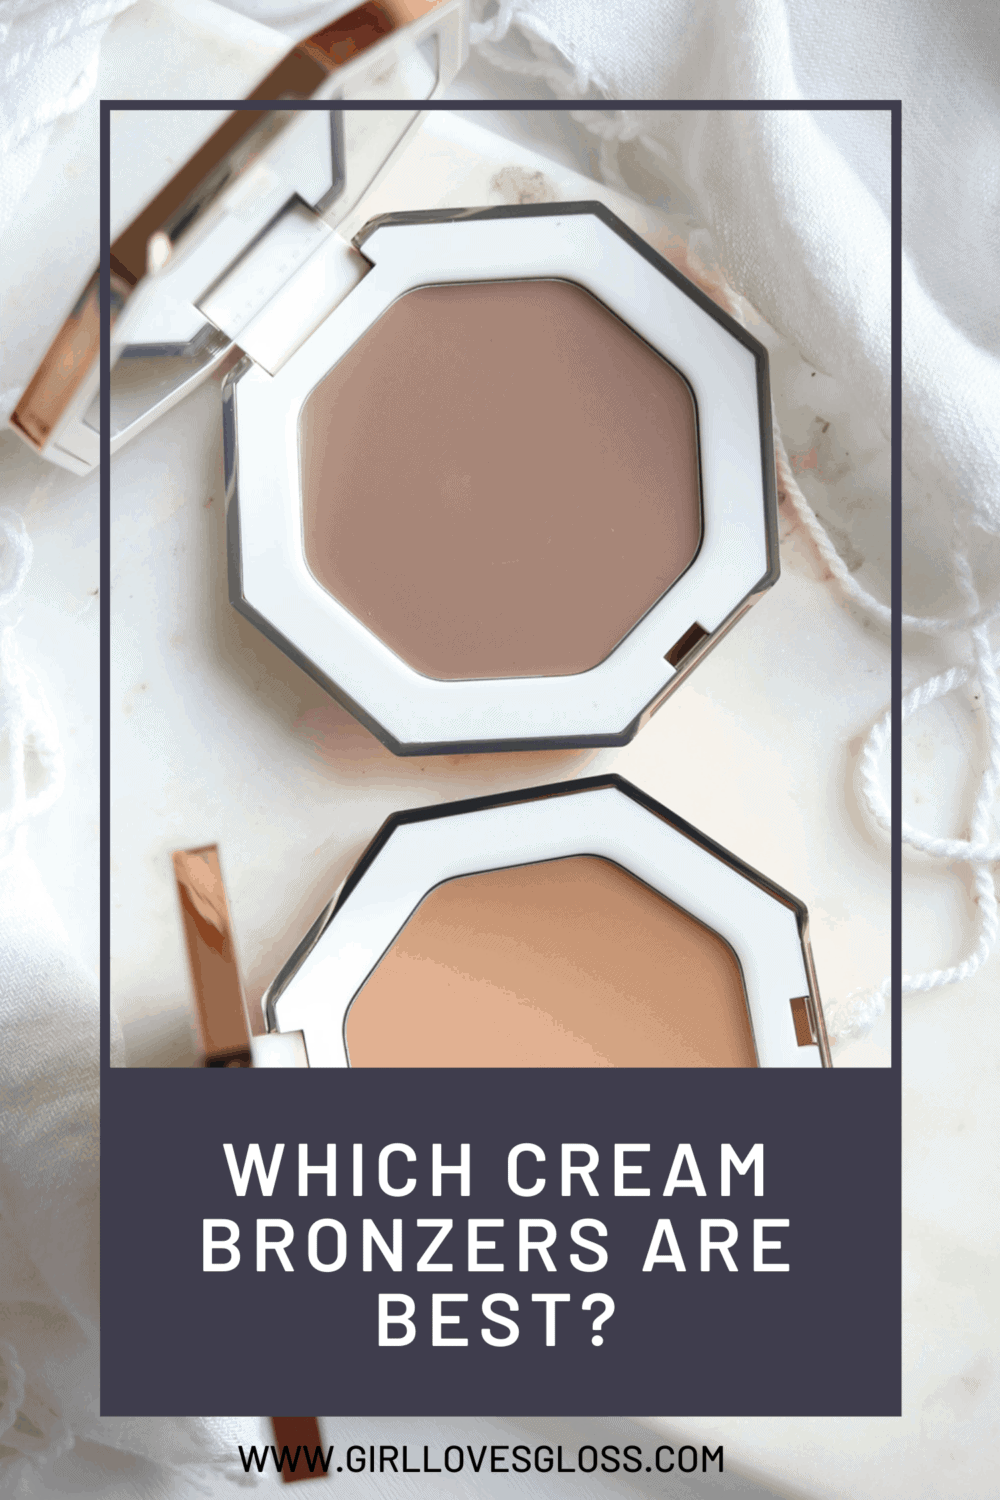 Fenty Beauty Cheeks Out Freestyle Cream Bronzer review and swatches of the in the shades Amber (contour) and Butta Biscuit